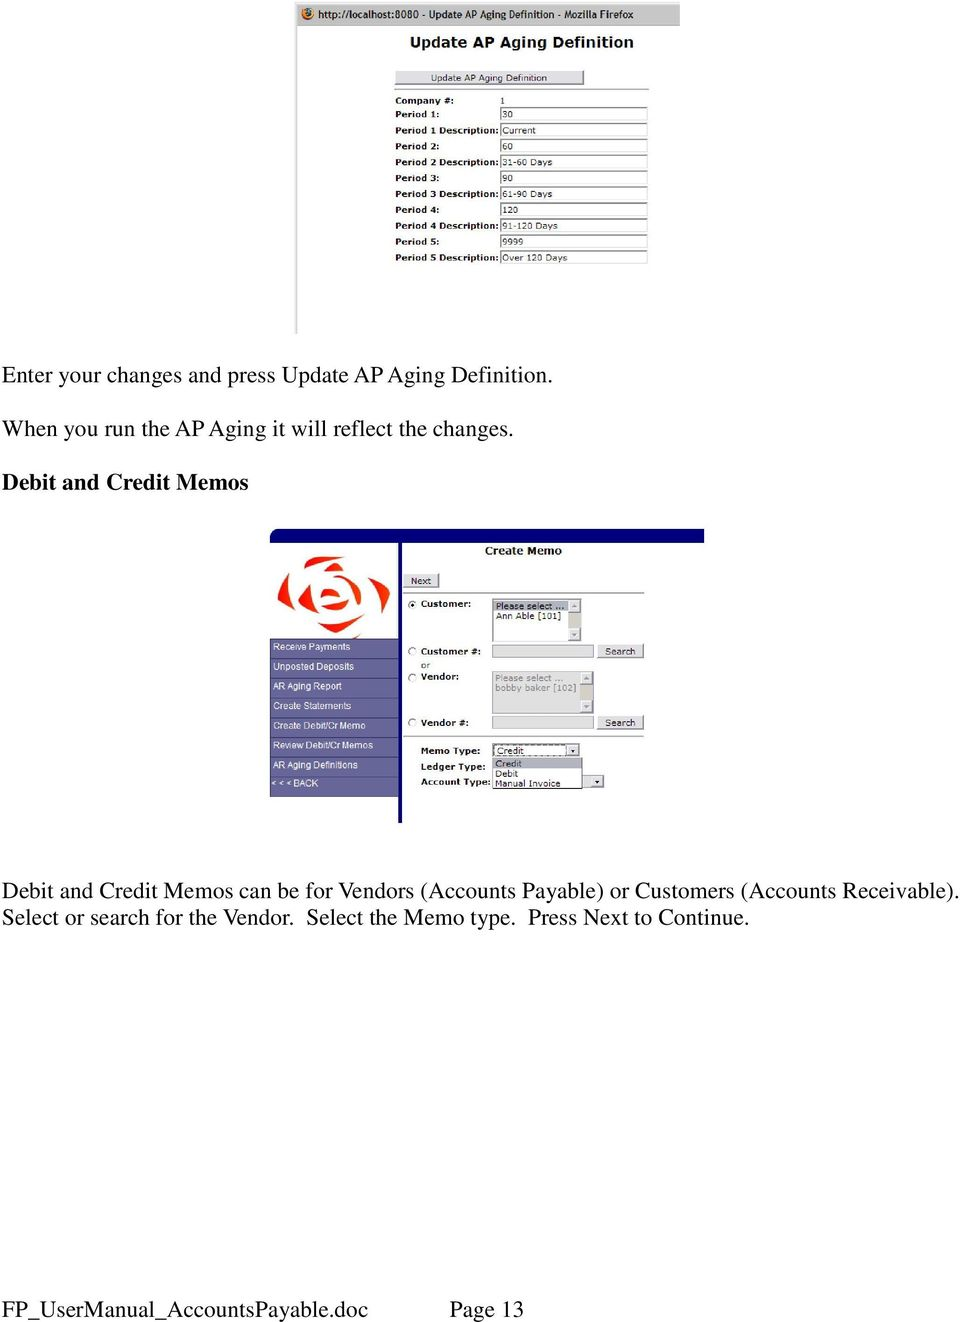 Debit and Credit Memos Debit and Credit Memos can be for Vendors (Accounts Payable) or